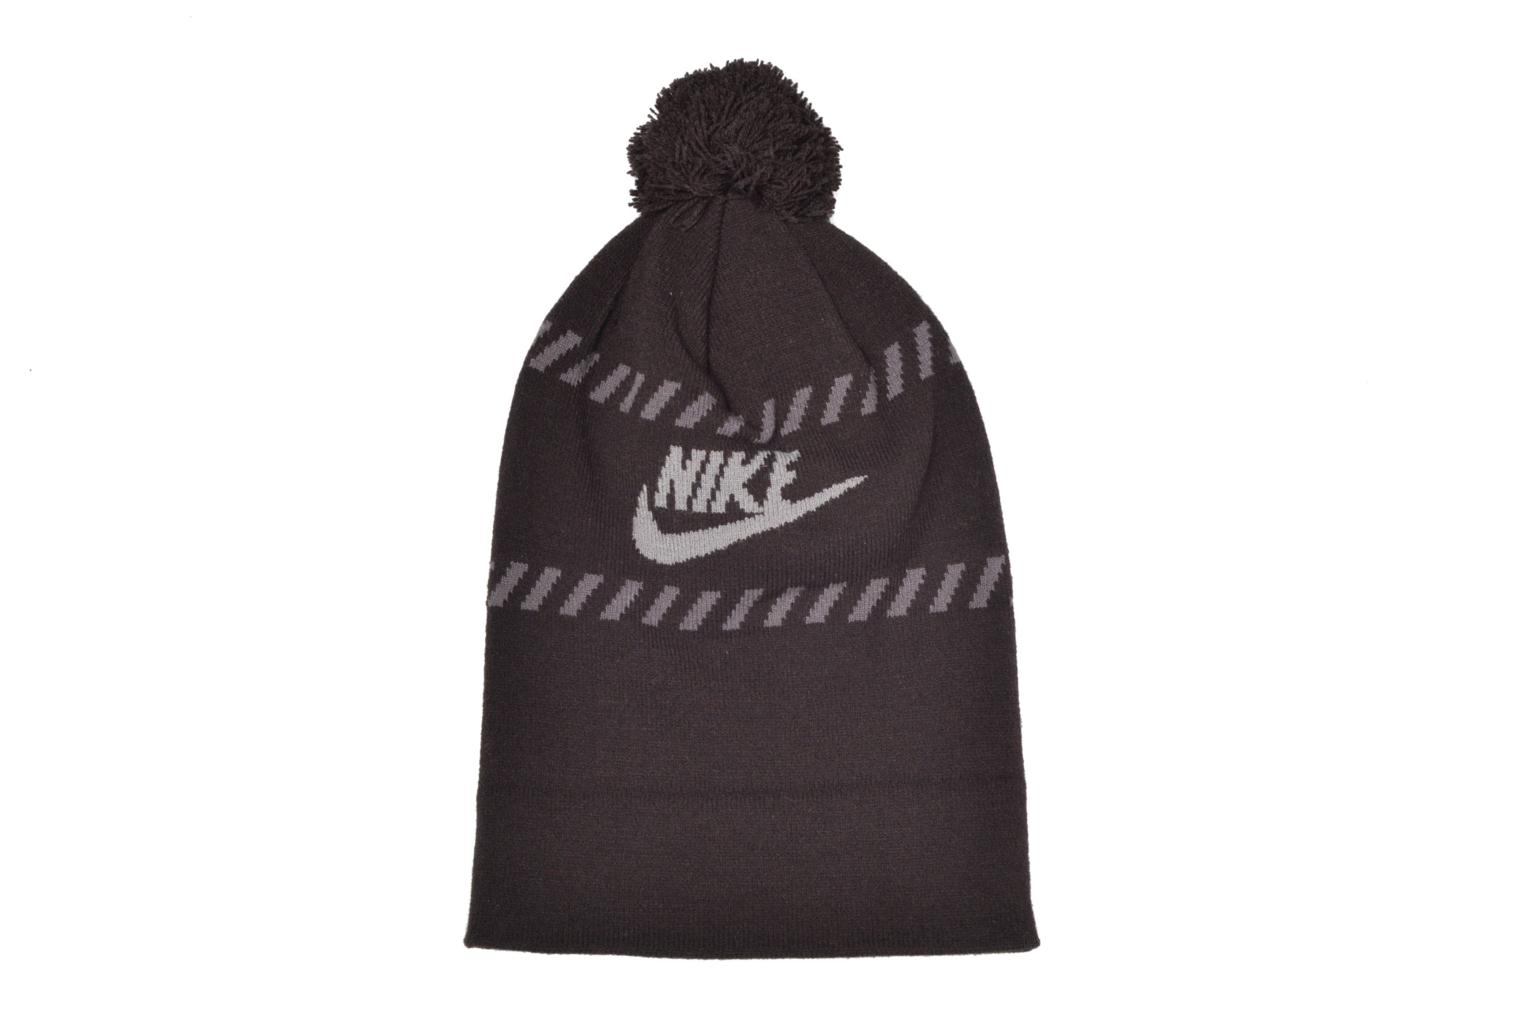 Beanie Nike Futura Pom Beanie-Red Bonnet Black model view